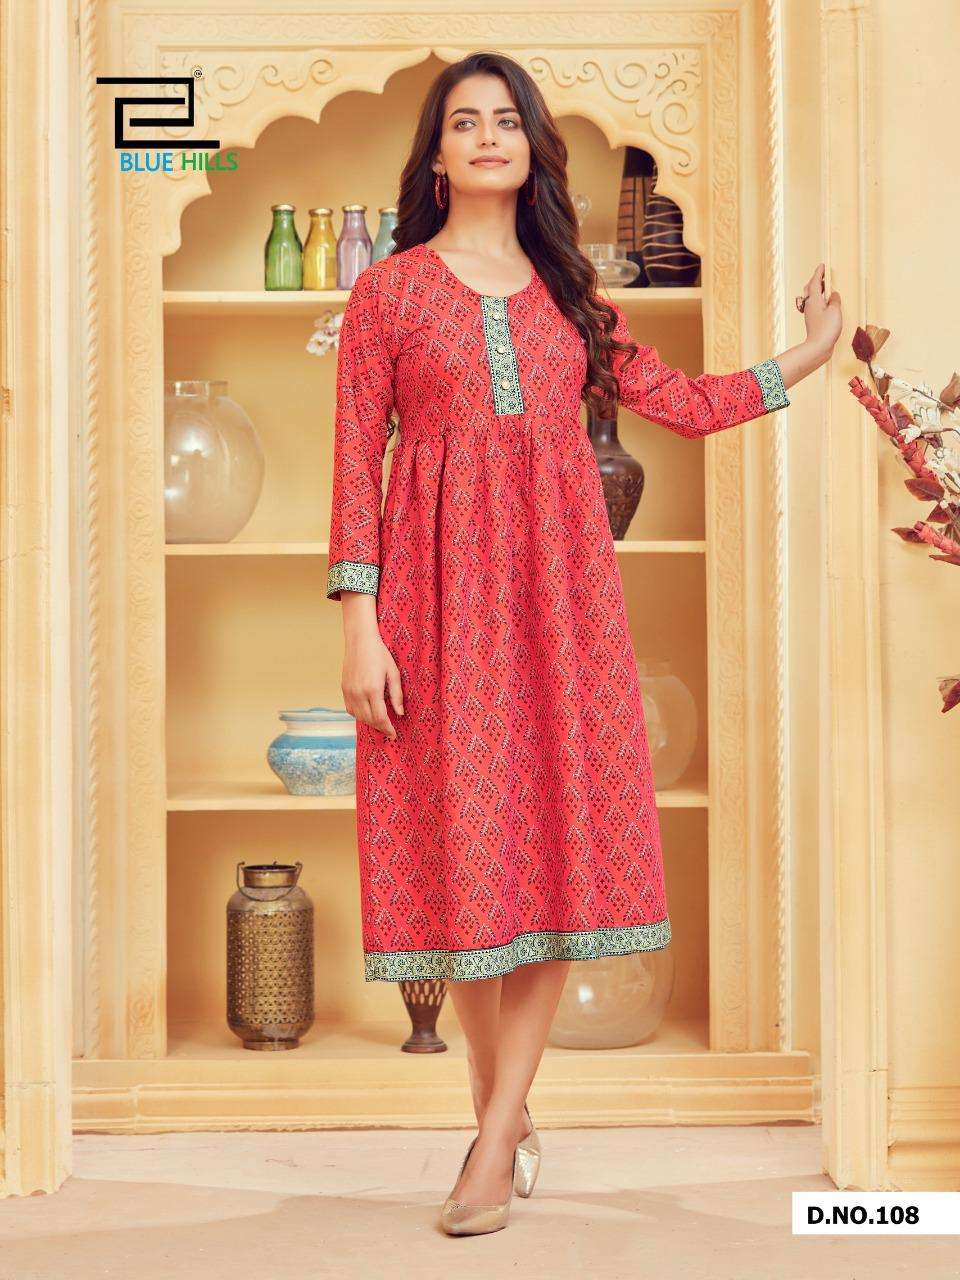 Blue Hills Velly Vol 1 Rayon Two Tone Printed Kurtis collection